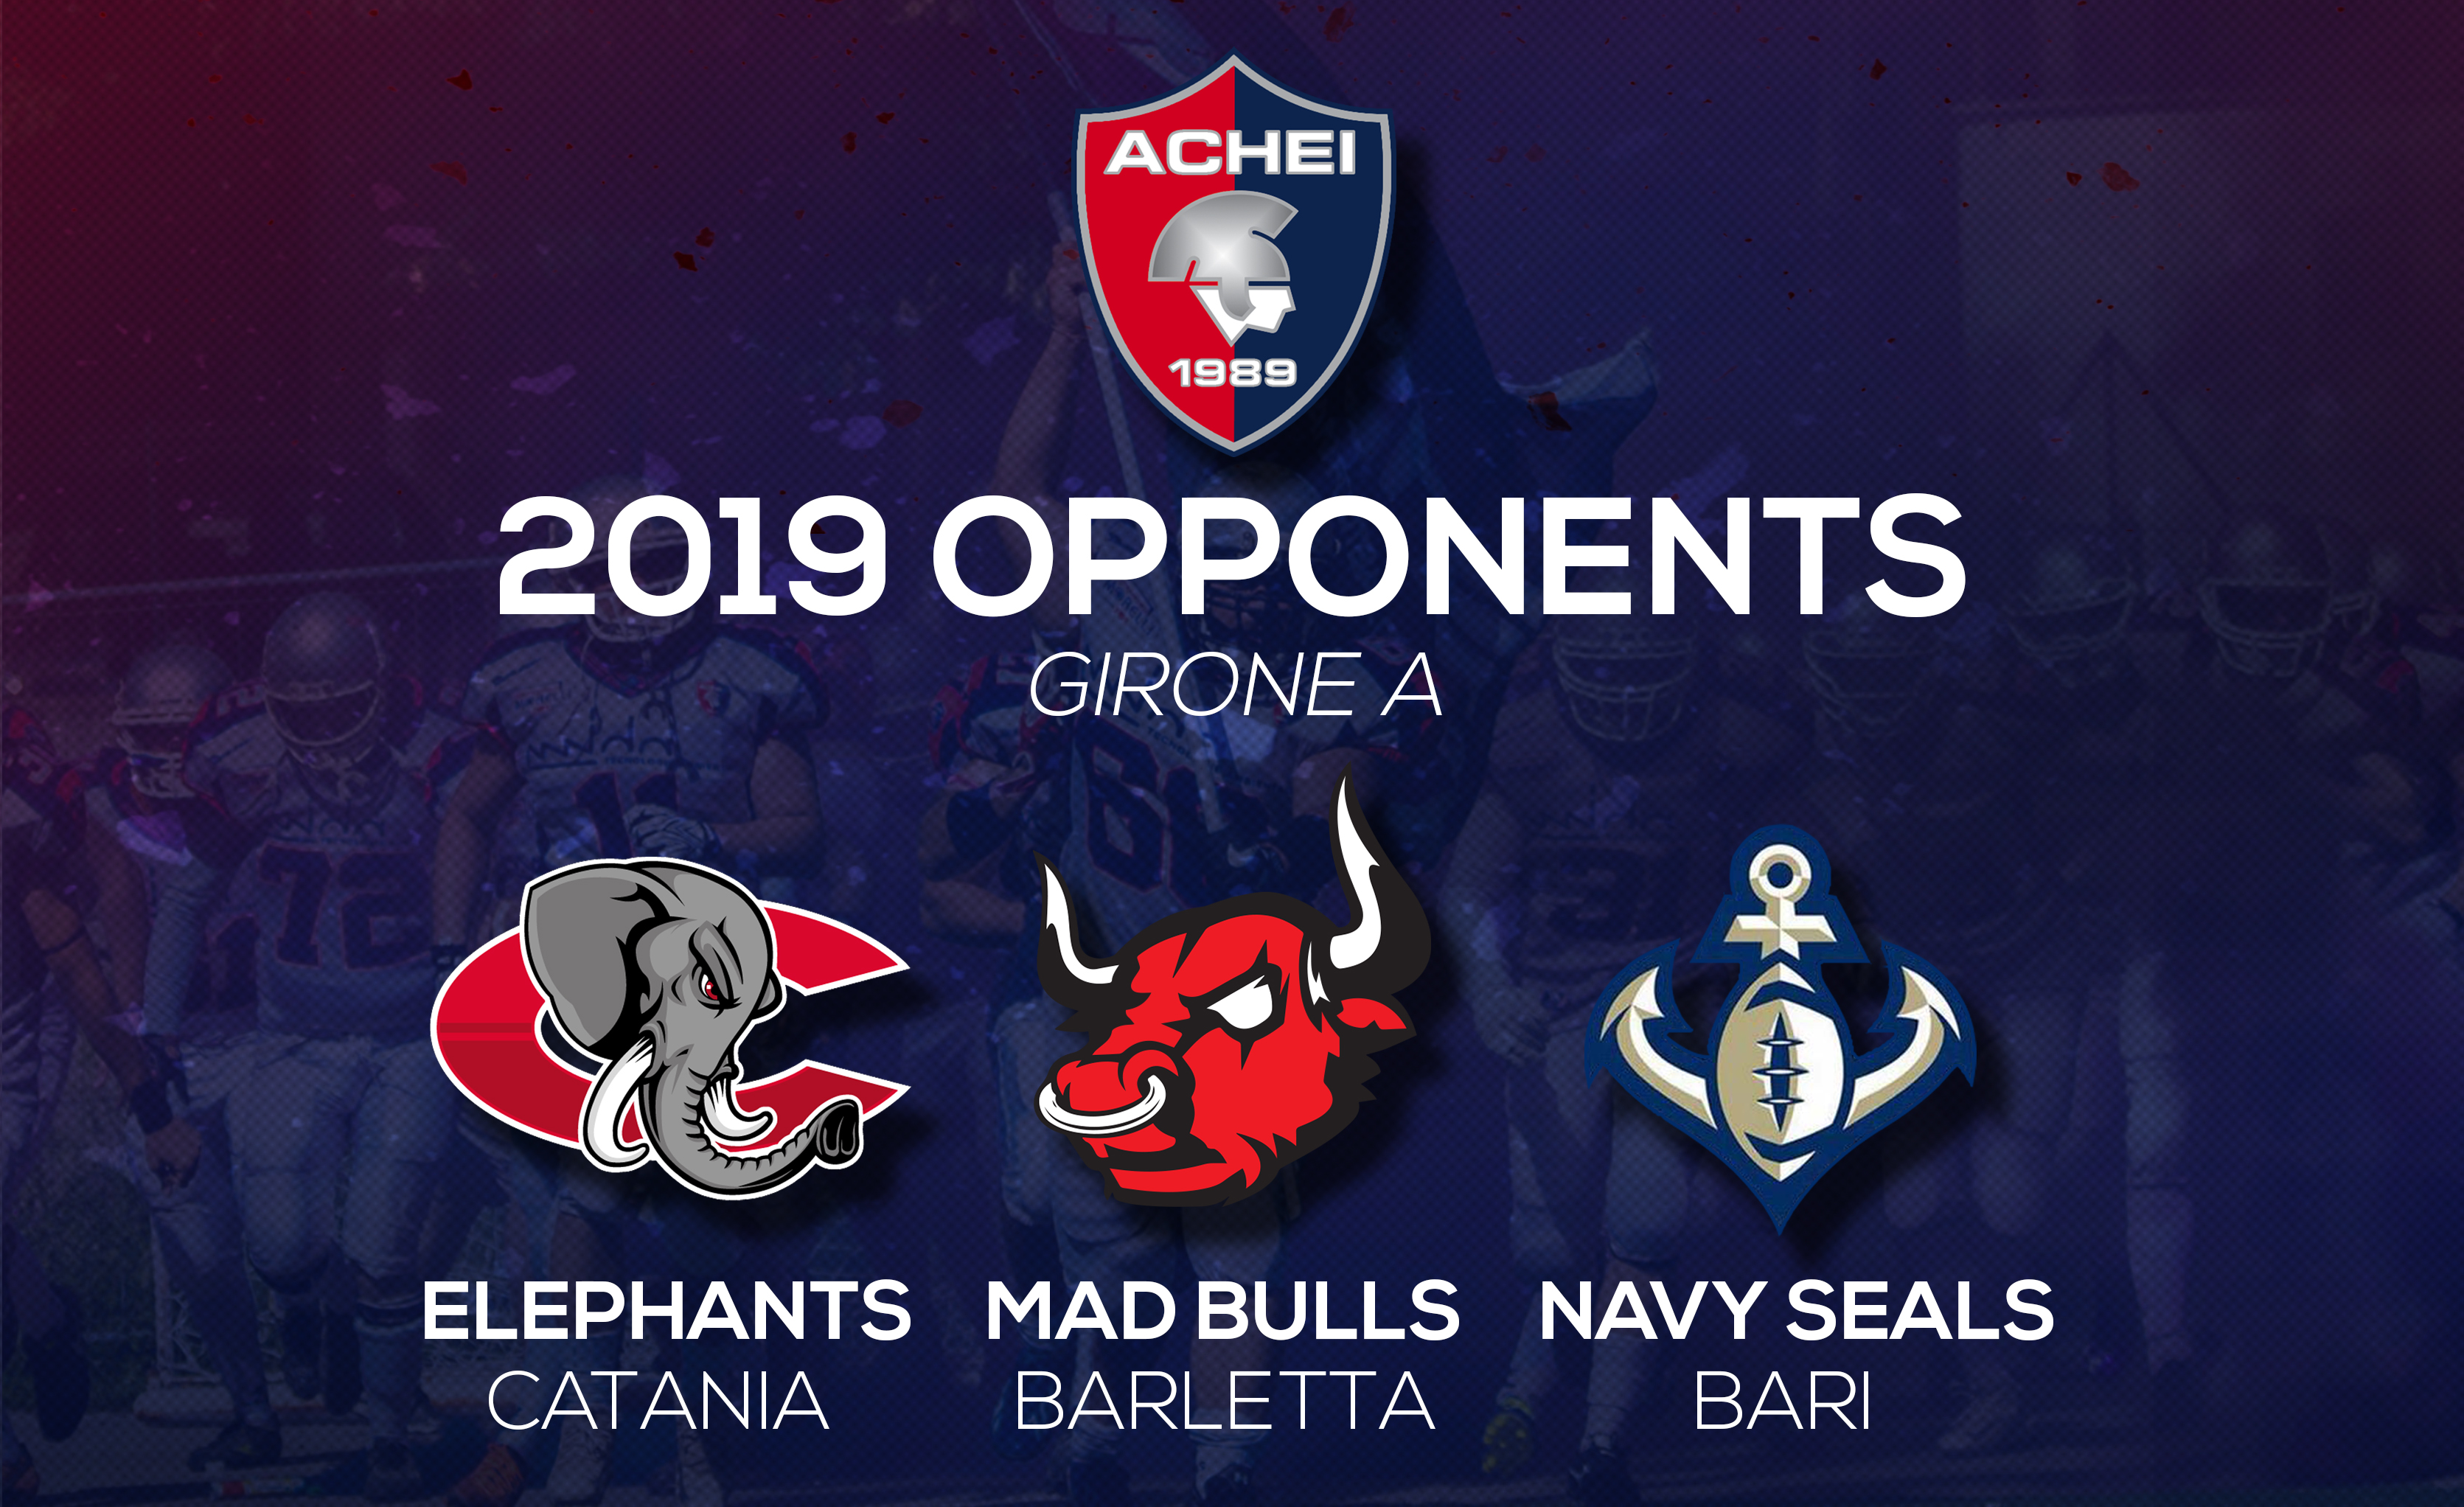 2019 OPPONENTS wp